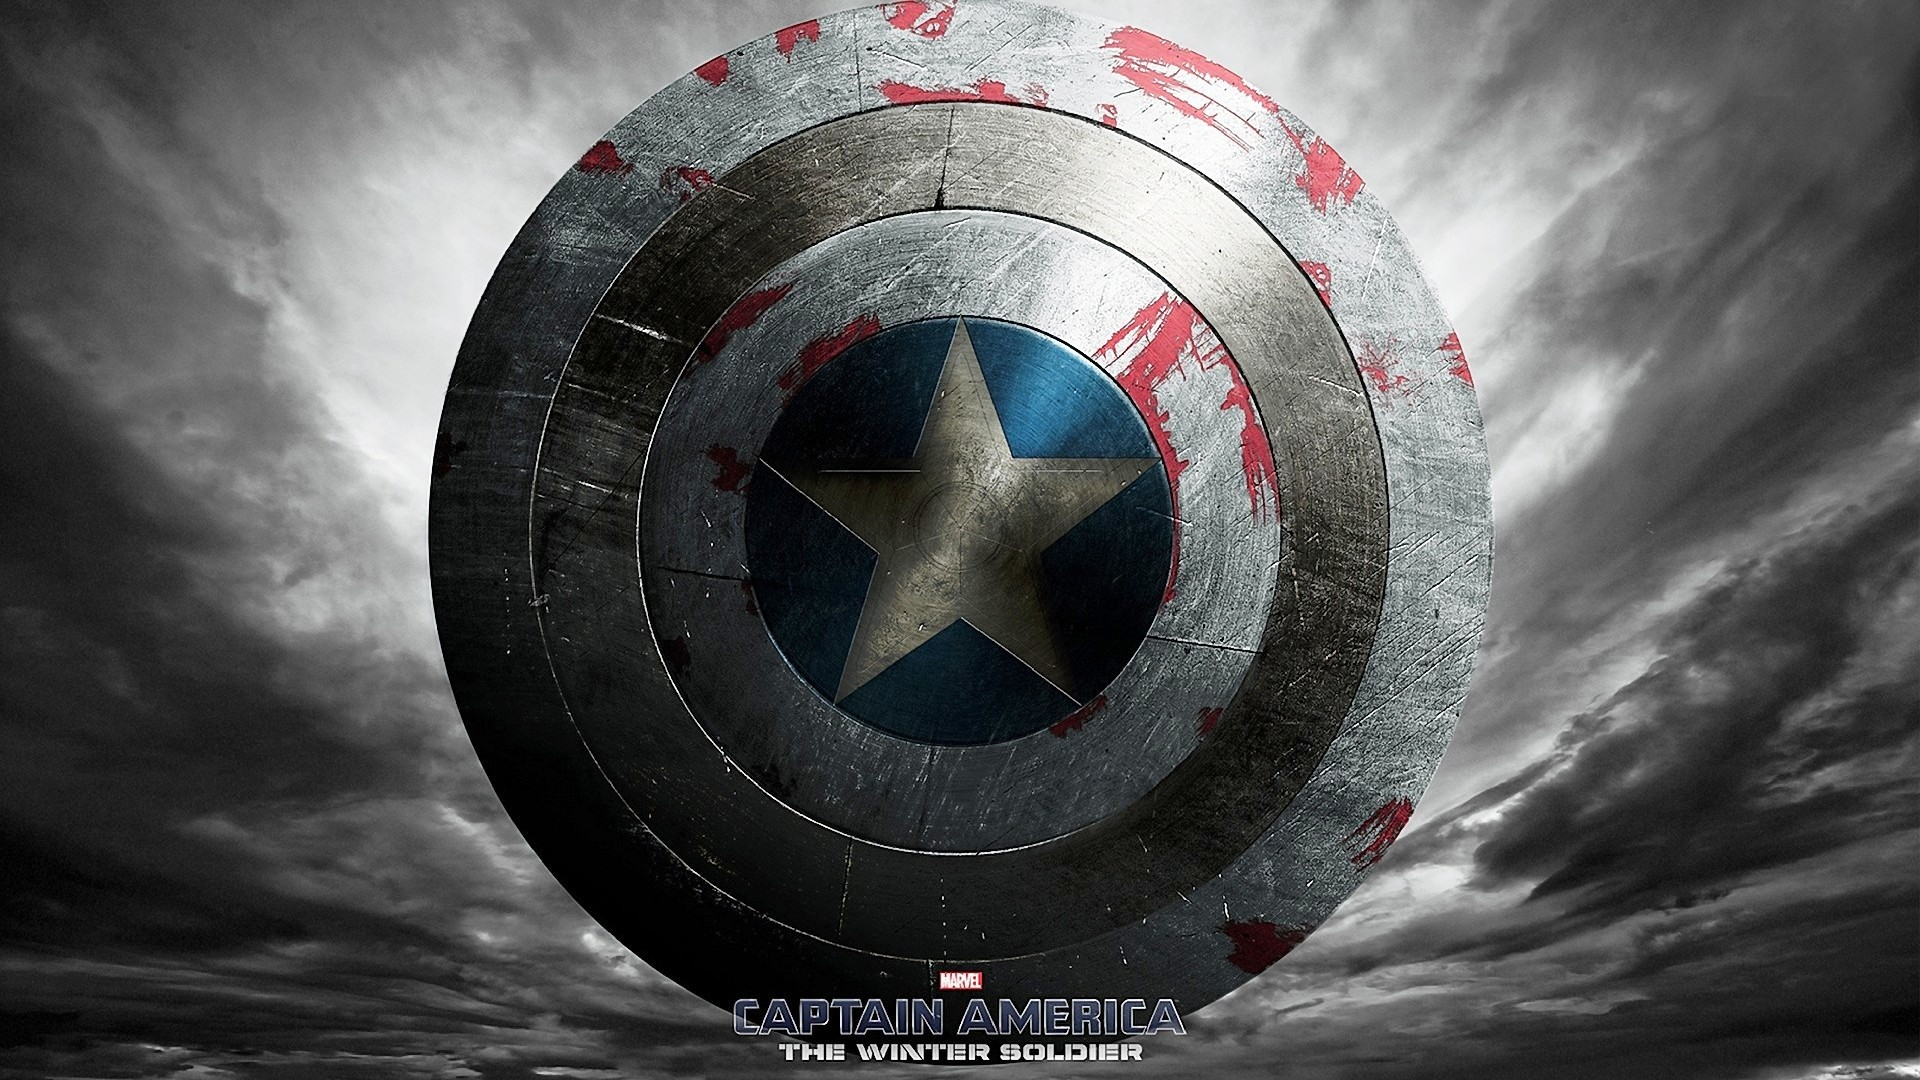 Captain America Avengers Wallpapers HD Wallpapers